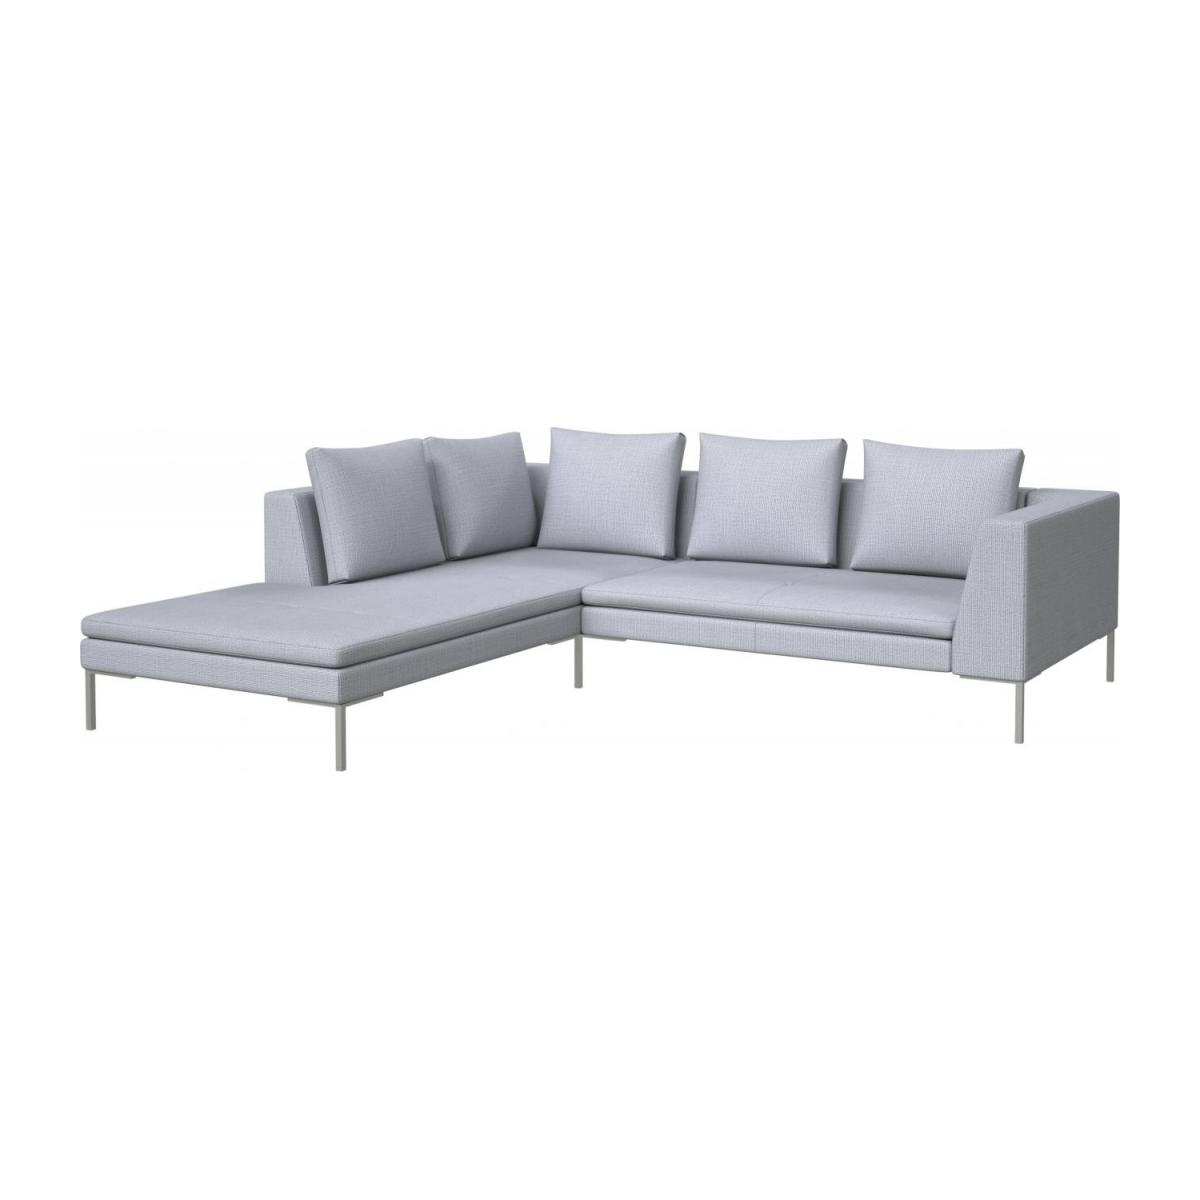 Montino - 2 seater sofa with chaise longue on the left in Fasoli ...